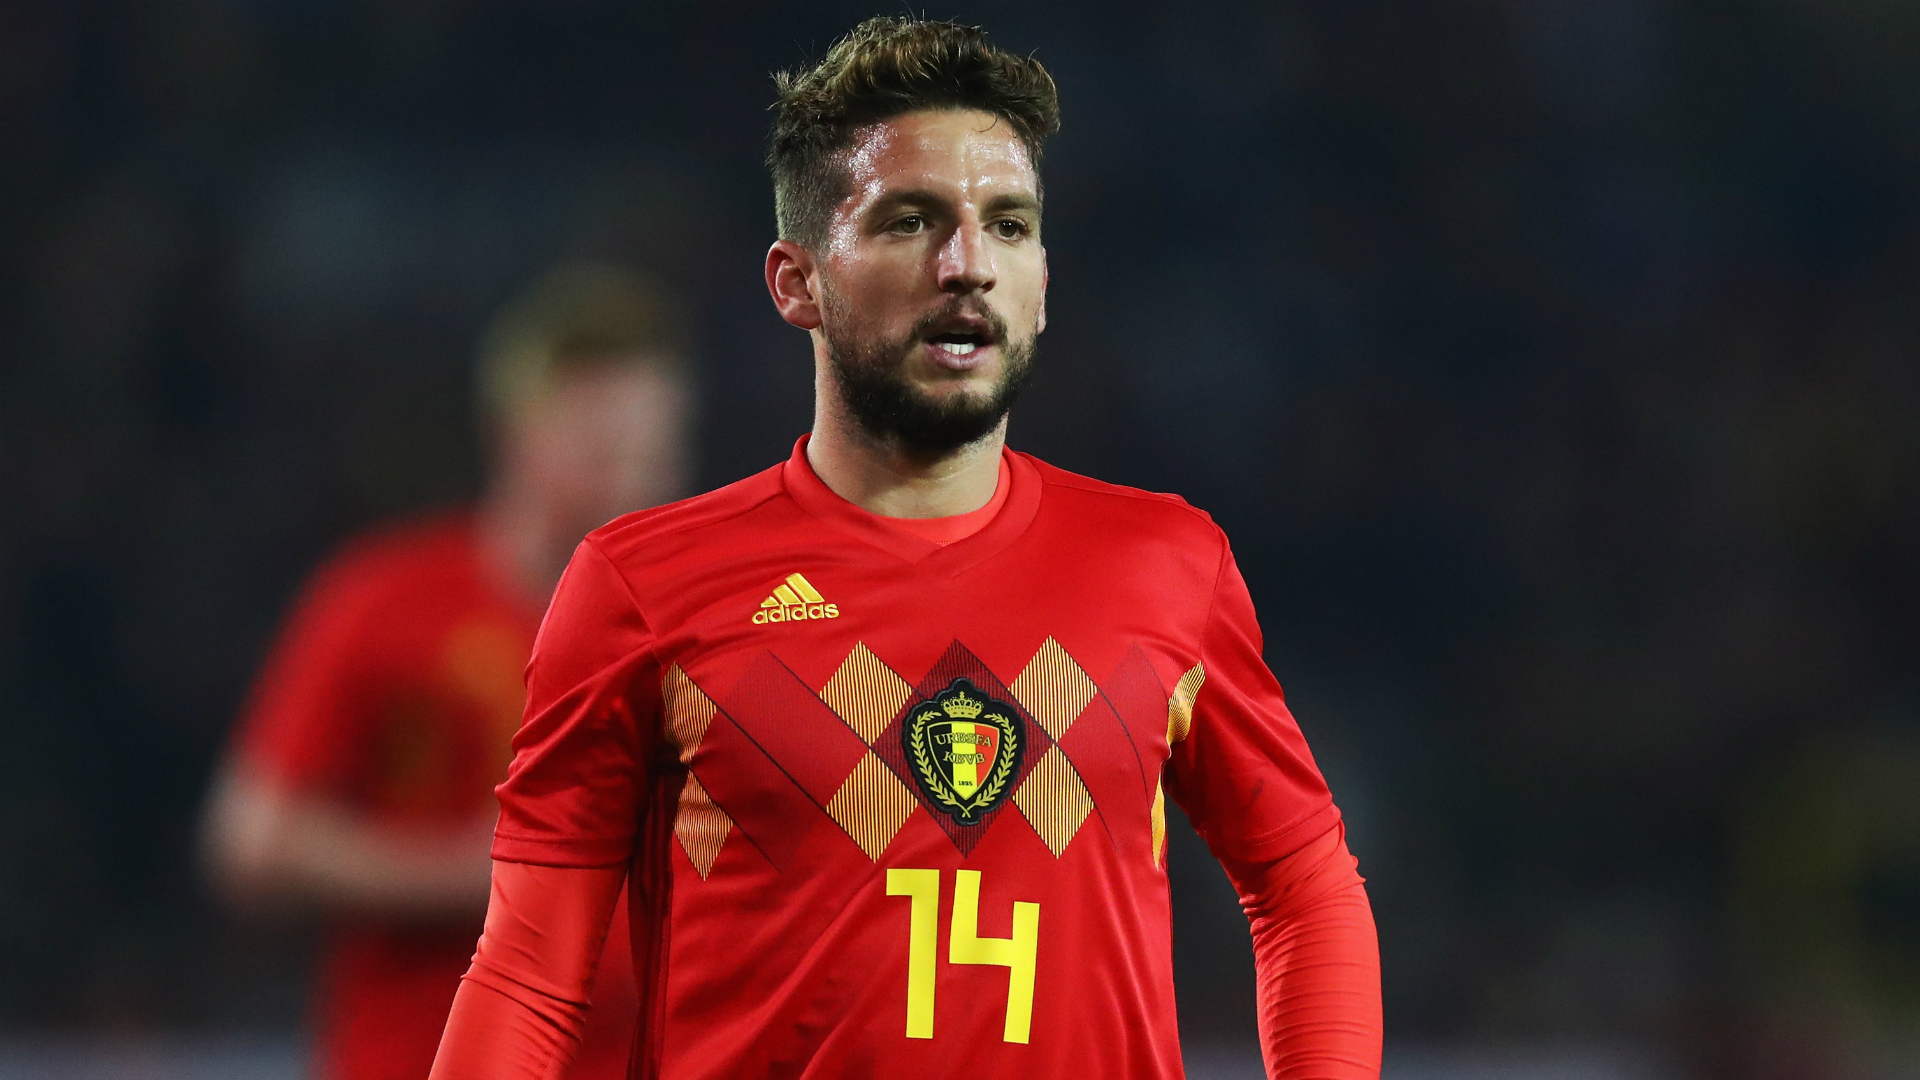 Belgium's Dries Mertens scores off incredible volley and Twitter loses it